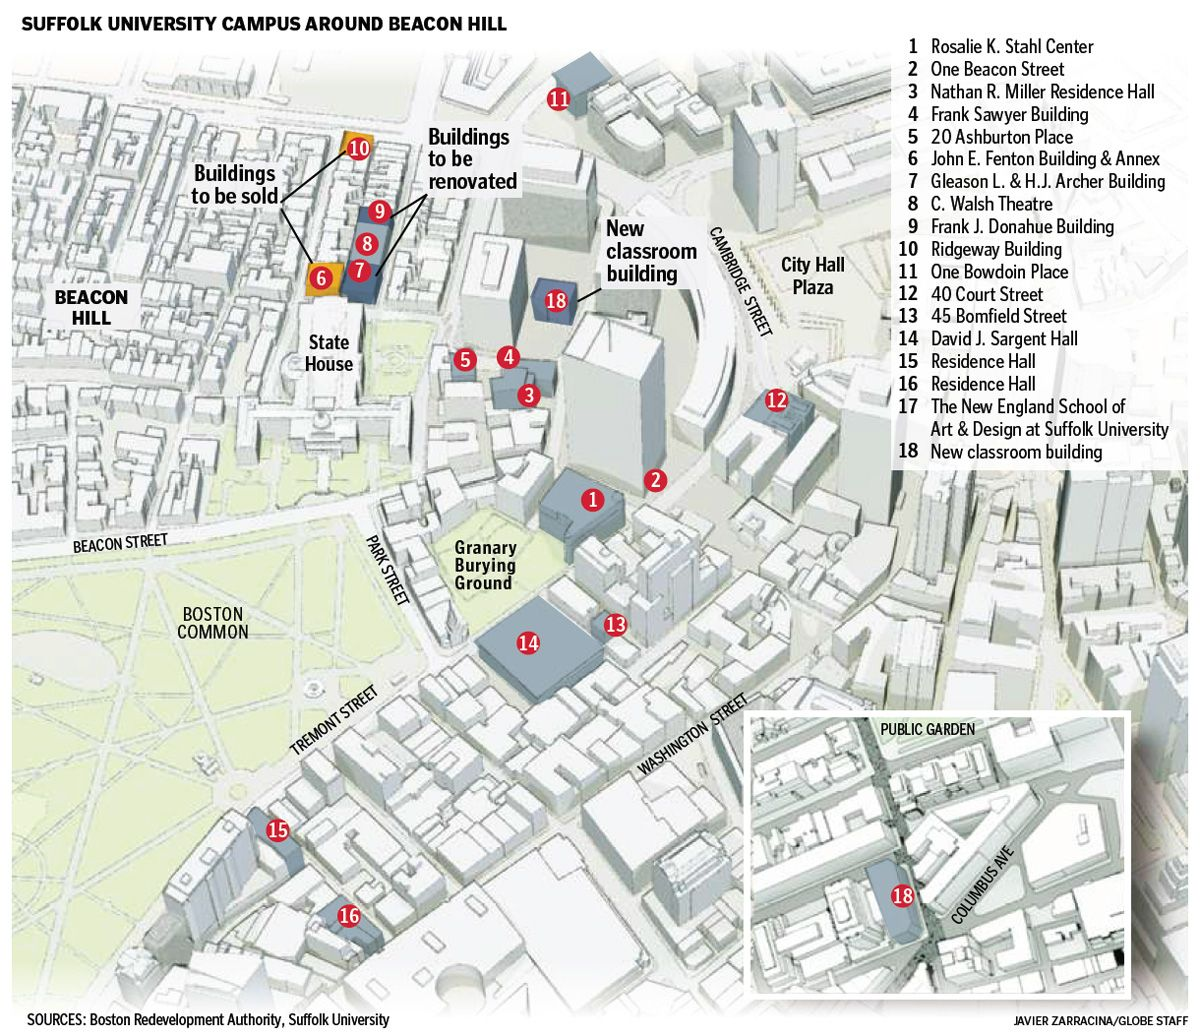 Suffolk Community College Grant Campus Map.Suffolk University Campus Map Google Search An A L Y Sis